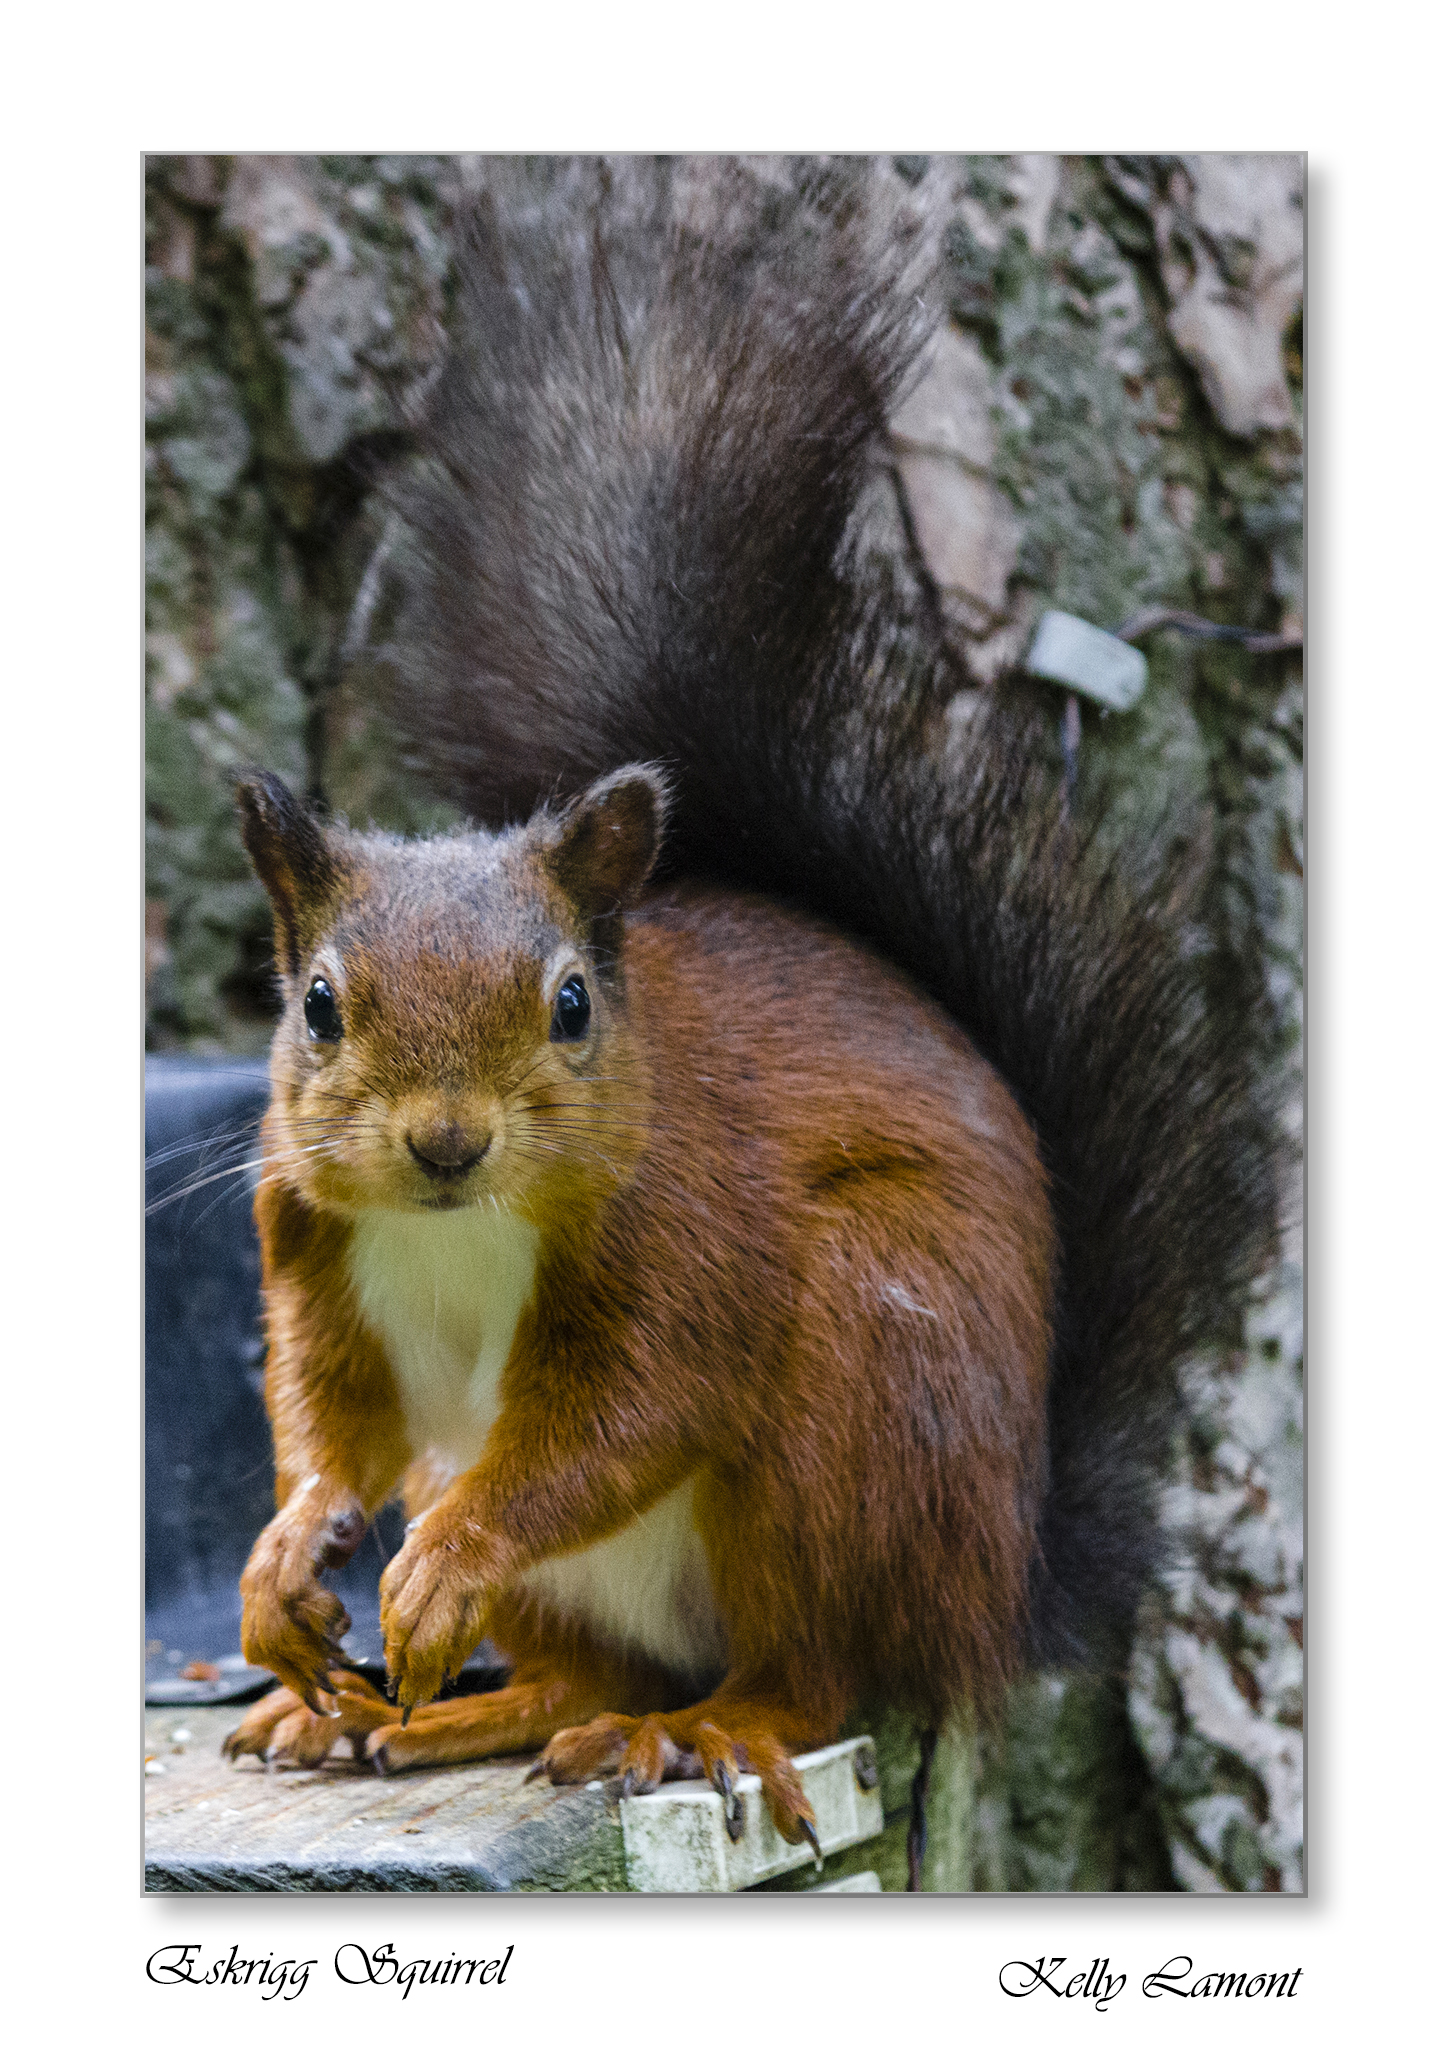 Kelly - Eskrigg Squirrel Small